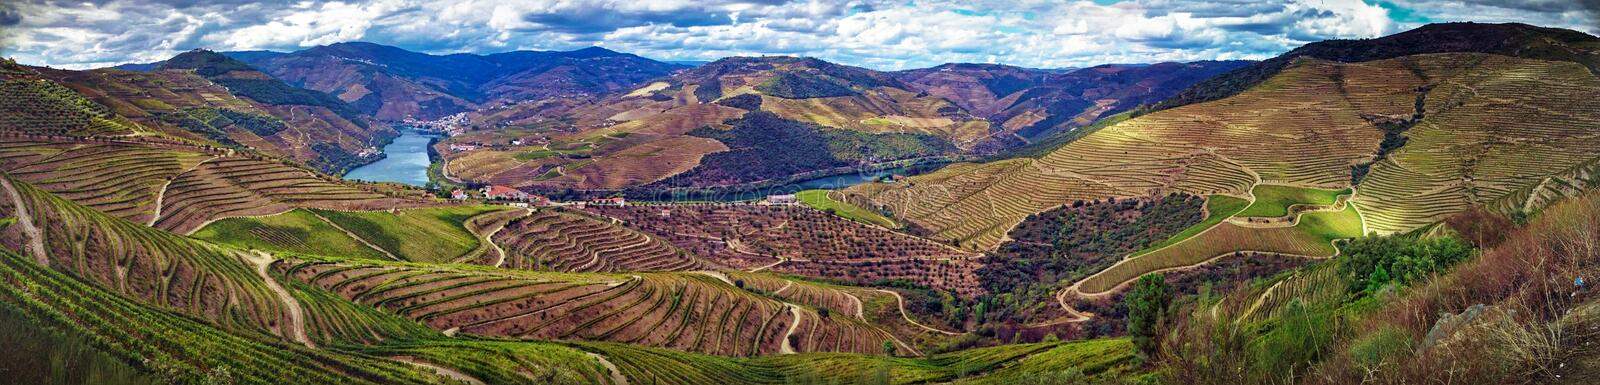 Splendid Douro valley royalty free stock photos